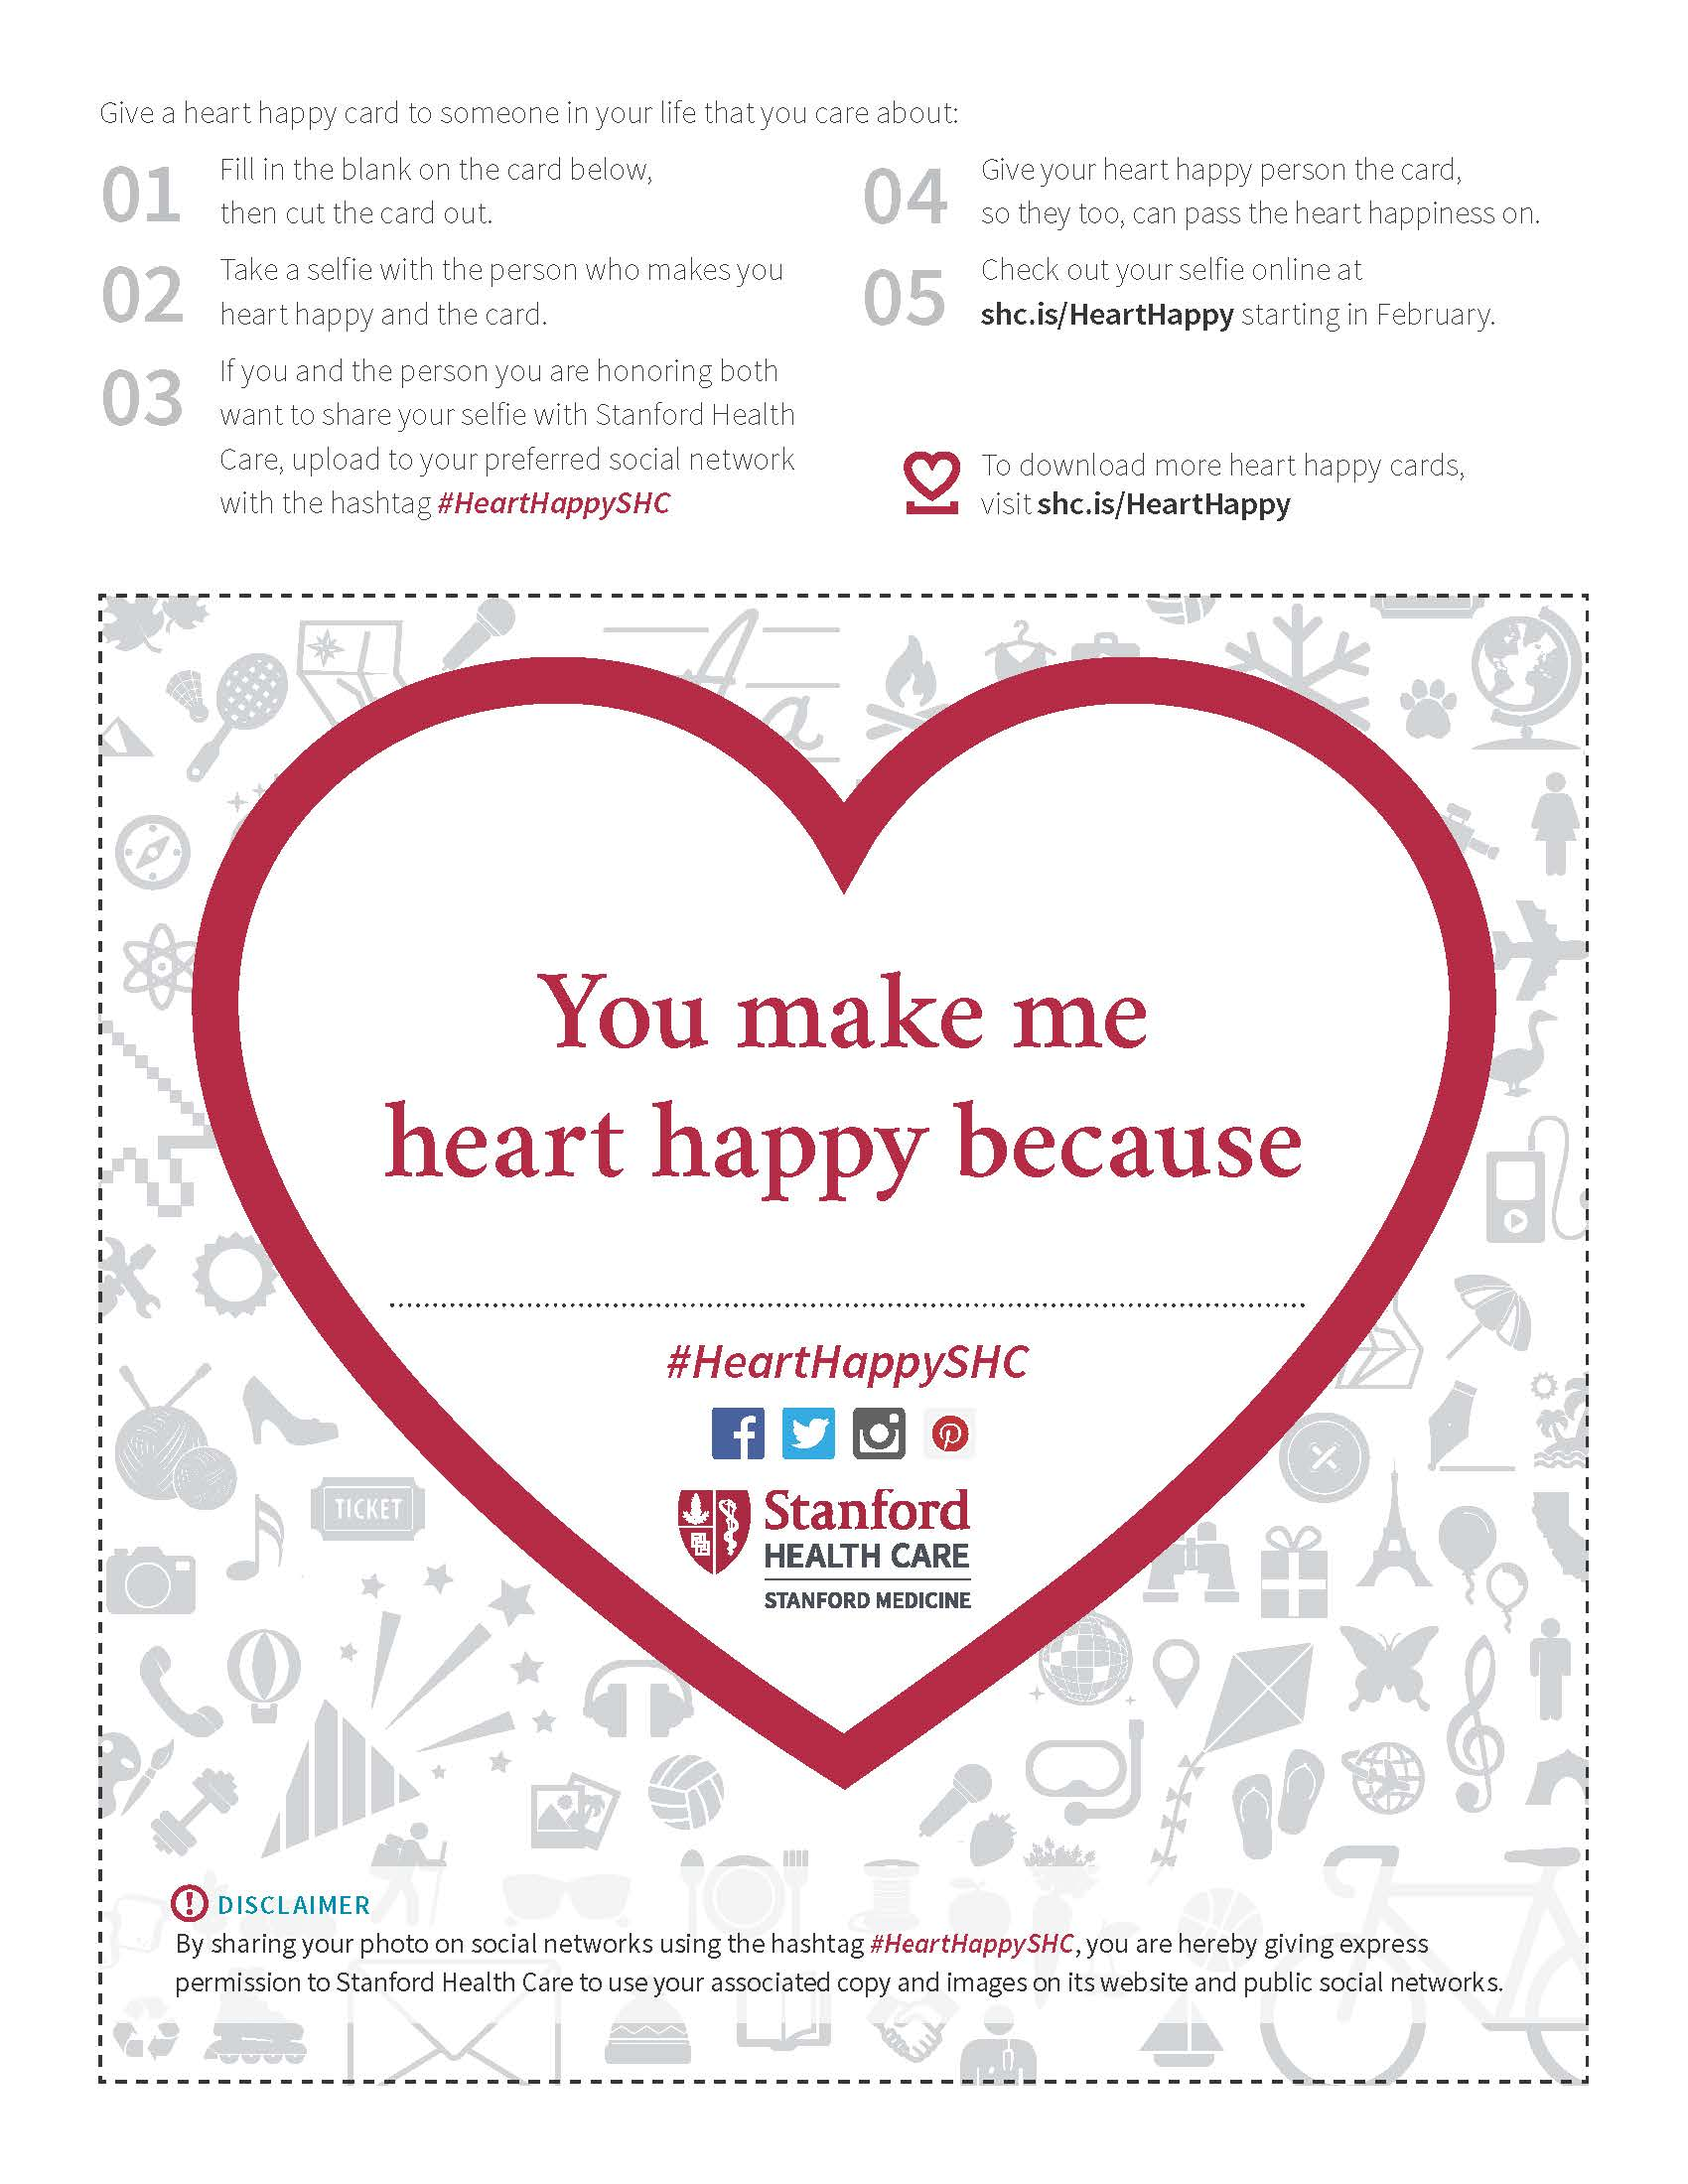 Download the #HeartHappySHC Card | Stanford Health Care